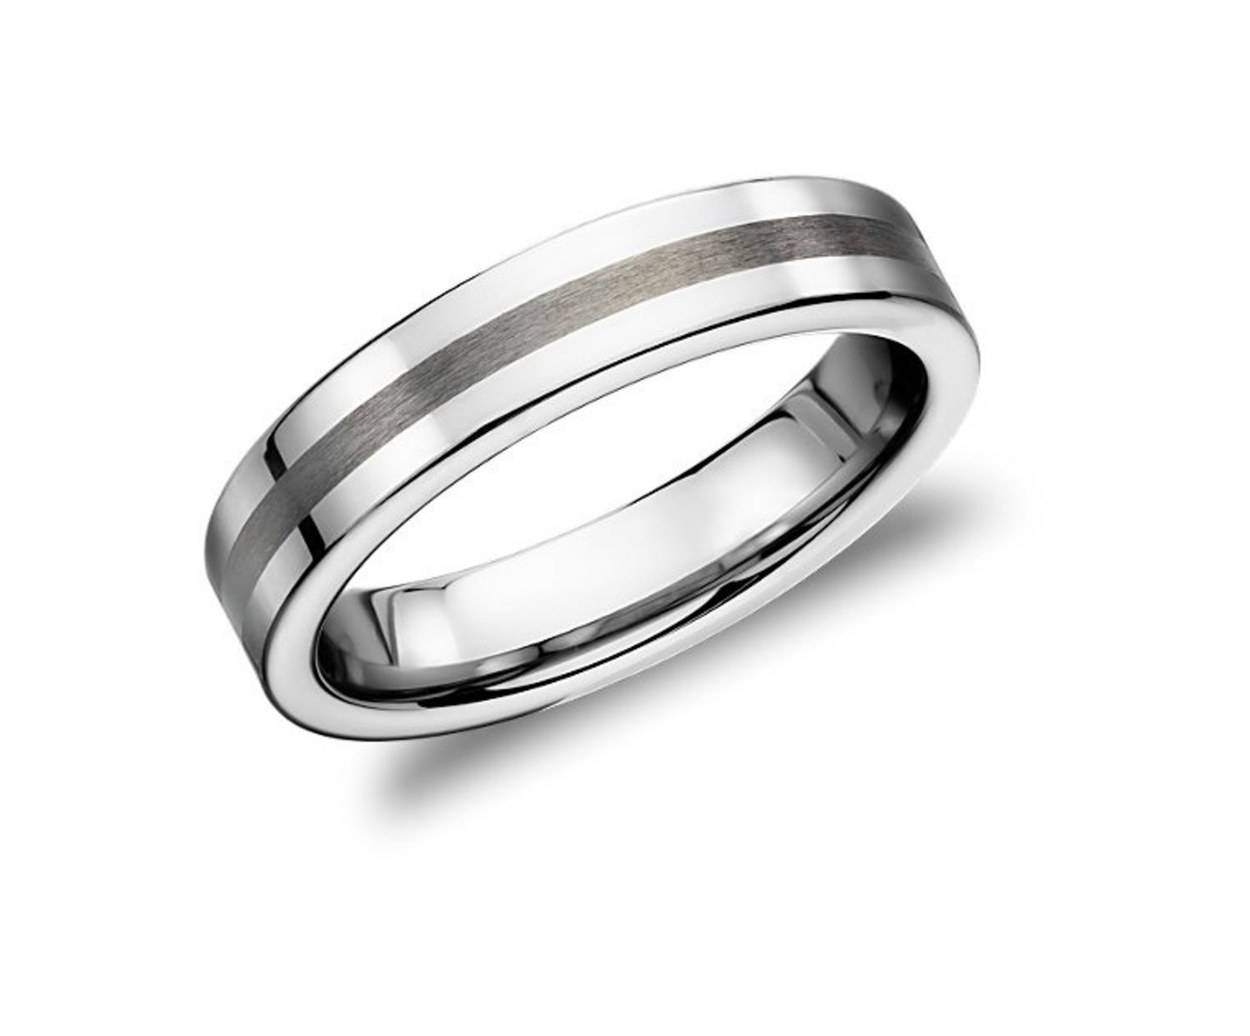 15 Men's Wedding Bands Your Groom Won't Want To Take Off | Glamour Regarding Male Platinum Wedding Rings (View 1 of 15)